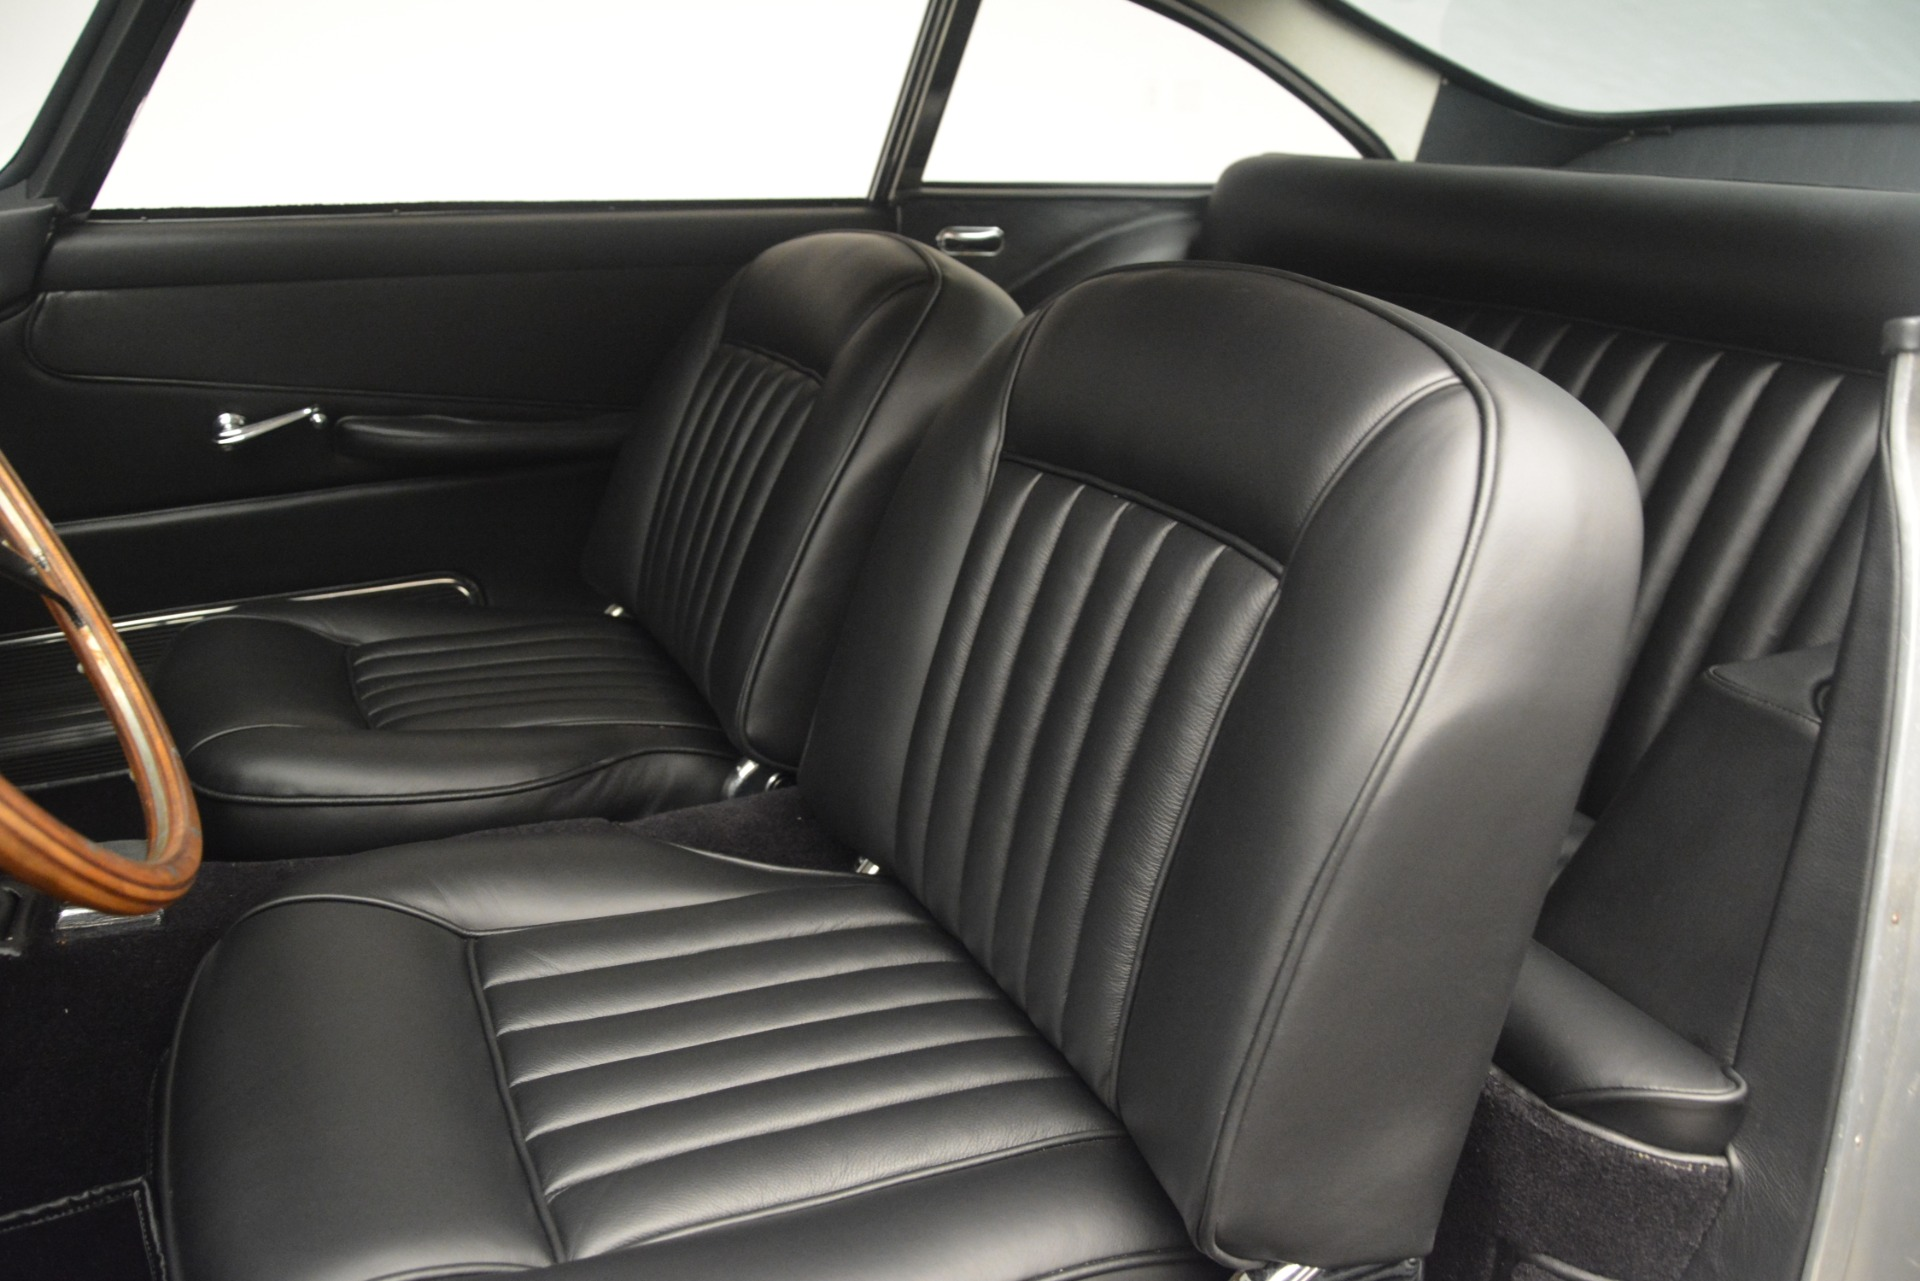 Used 1961 Aston Martin DB4 Series IV Coupe For Sale In Greenwich, CT 3186_p22